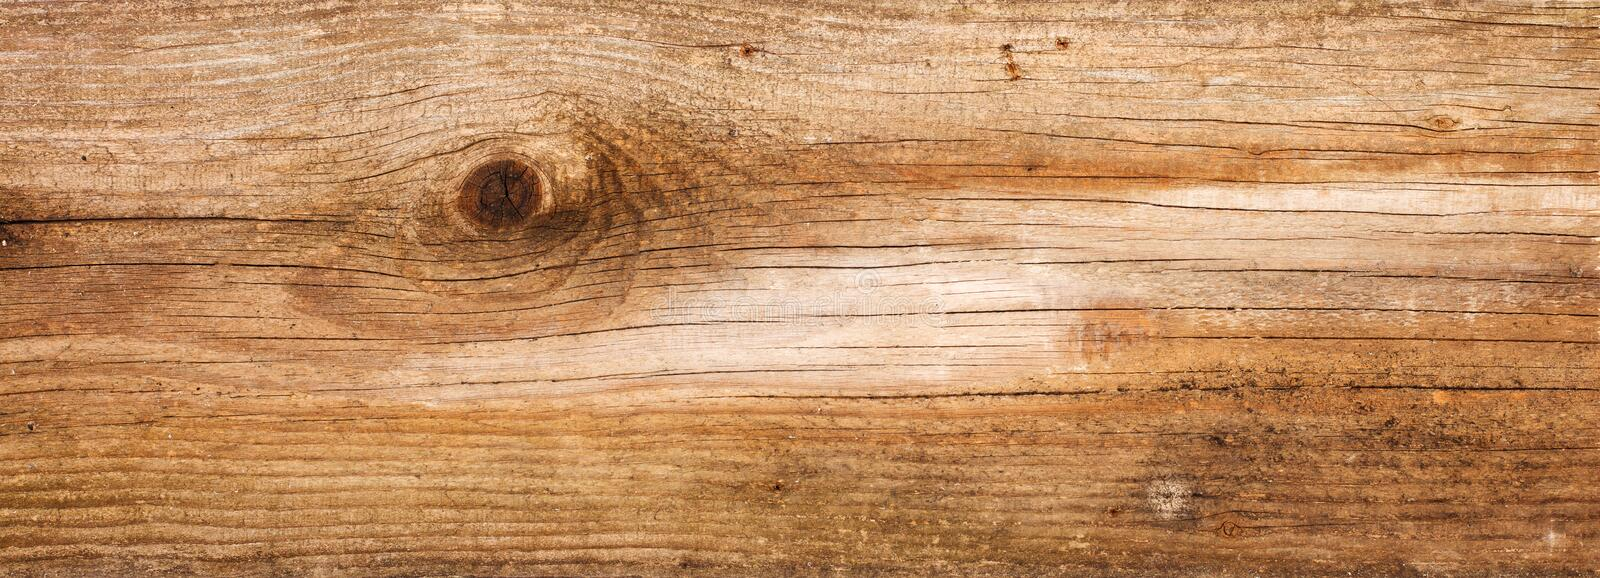 Download Wide Natural Fir Wood Texture Royalty Free Stock Images - Image: 26169309